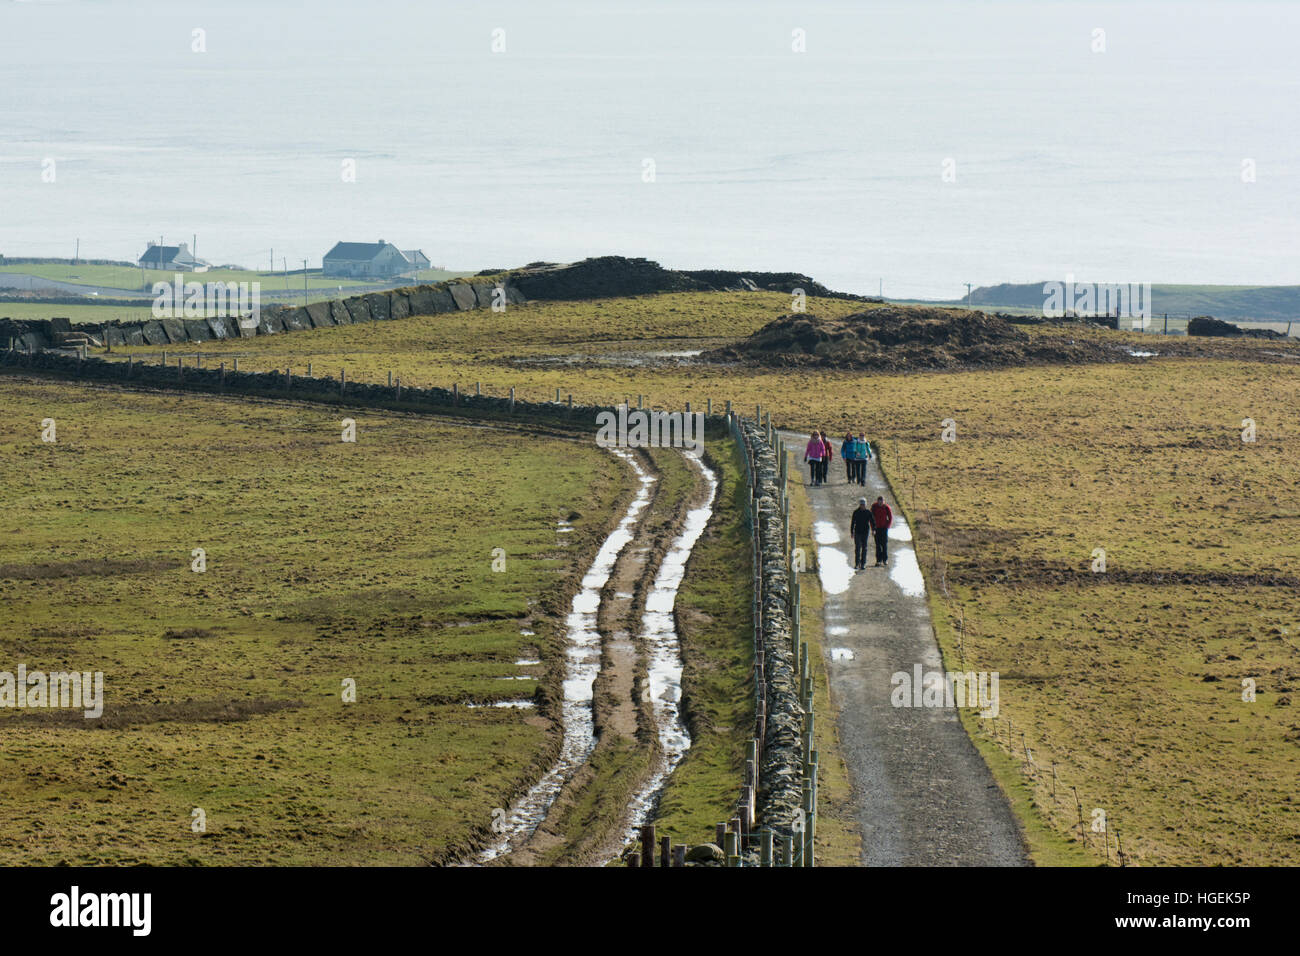 Walkers at the start of the Cliffs of Moher coastal walk near Liscannor in Clare, Ireland - Stock Image